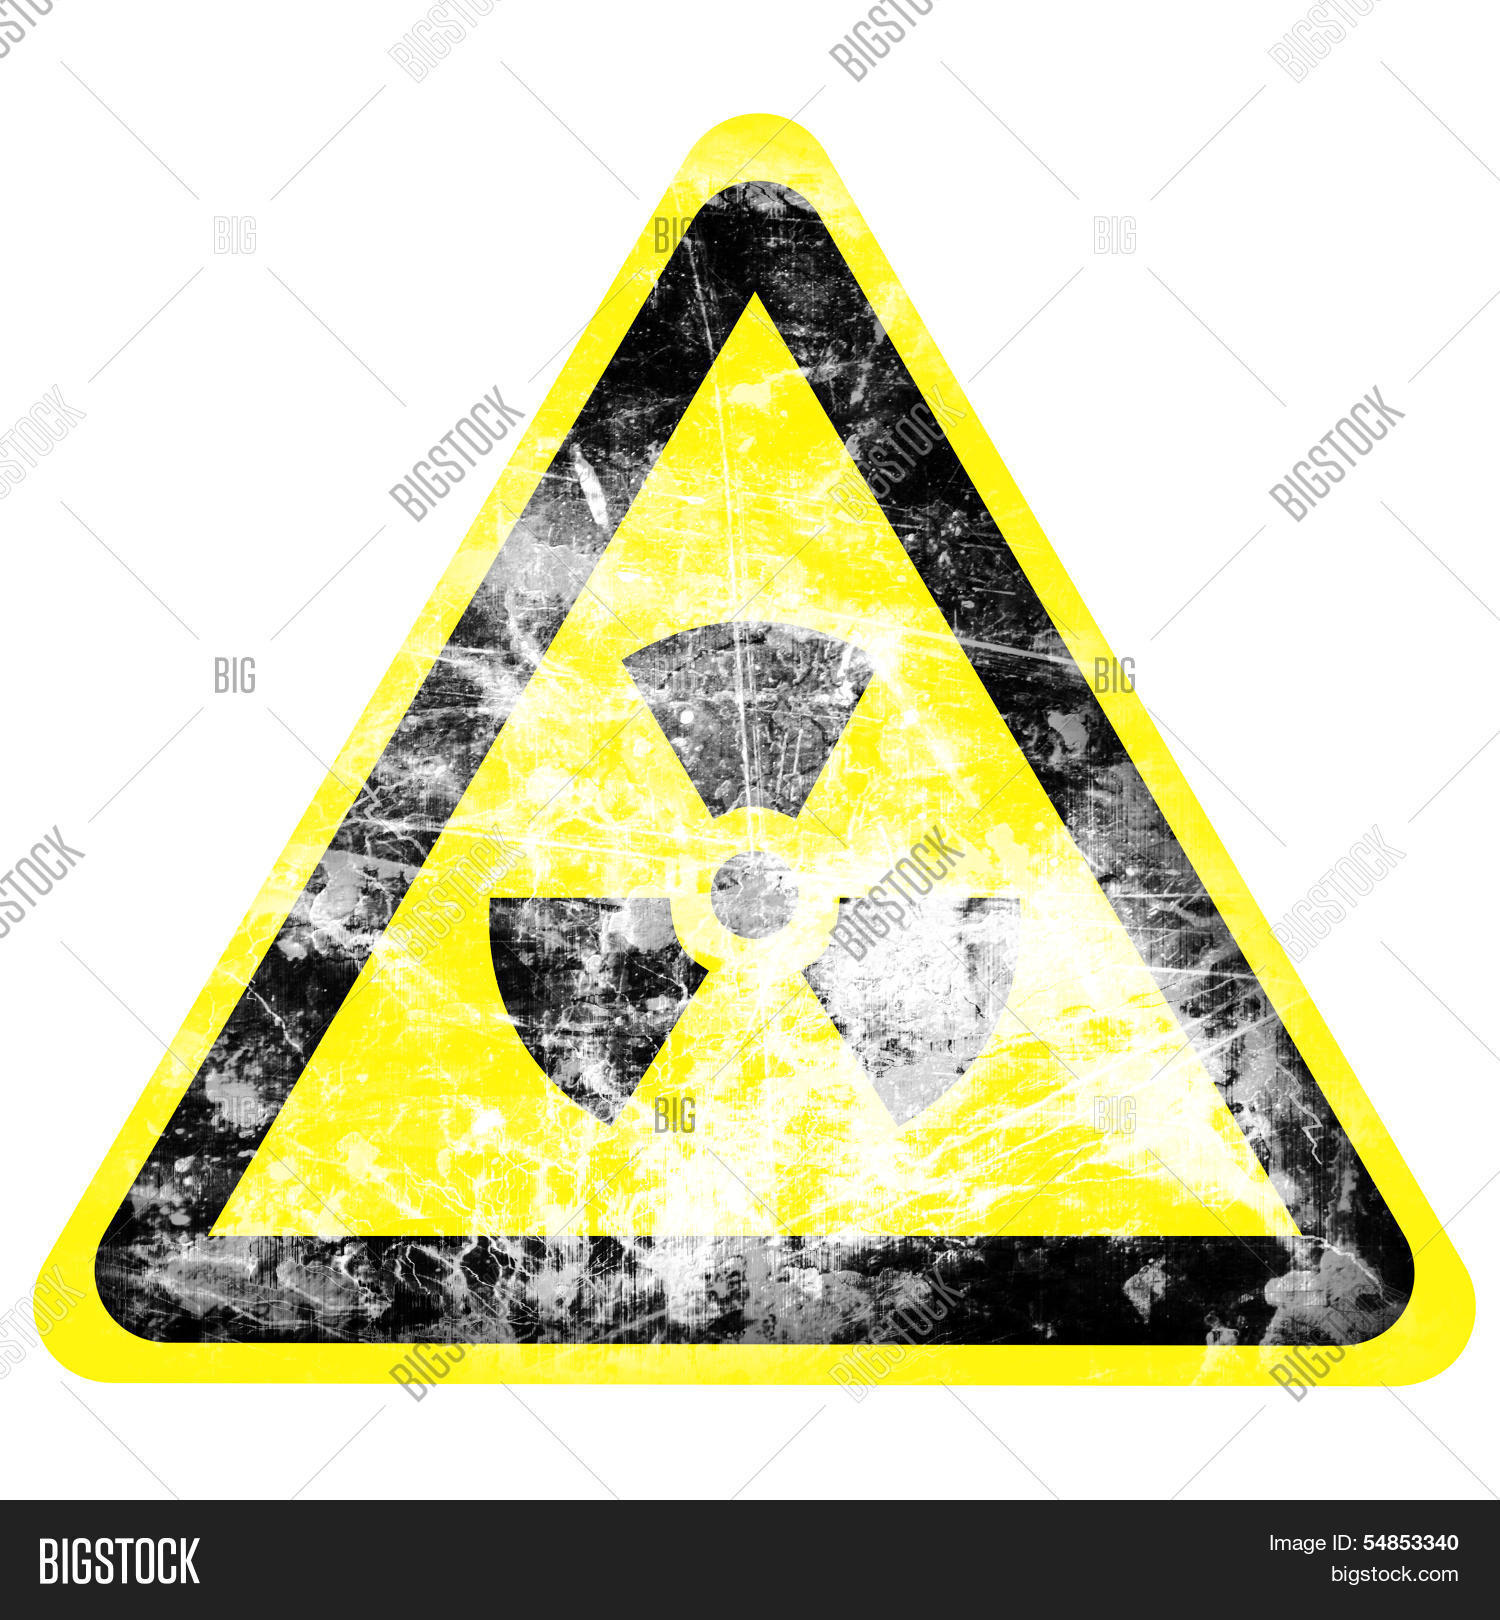 Nuclear Sign Image & Photo (Free Trial) | Bigstock